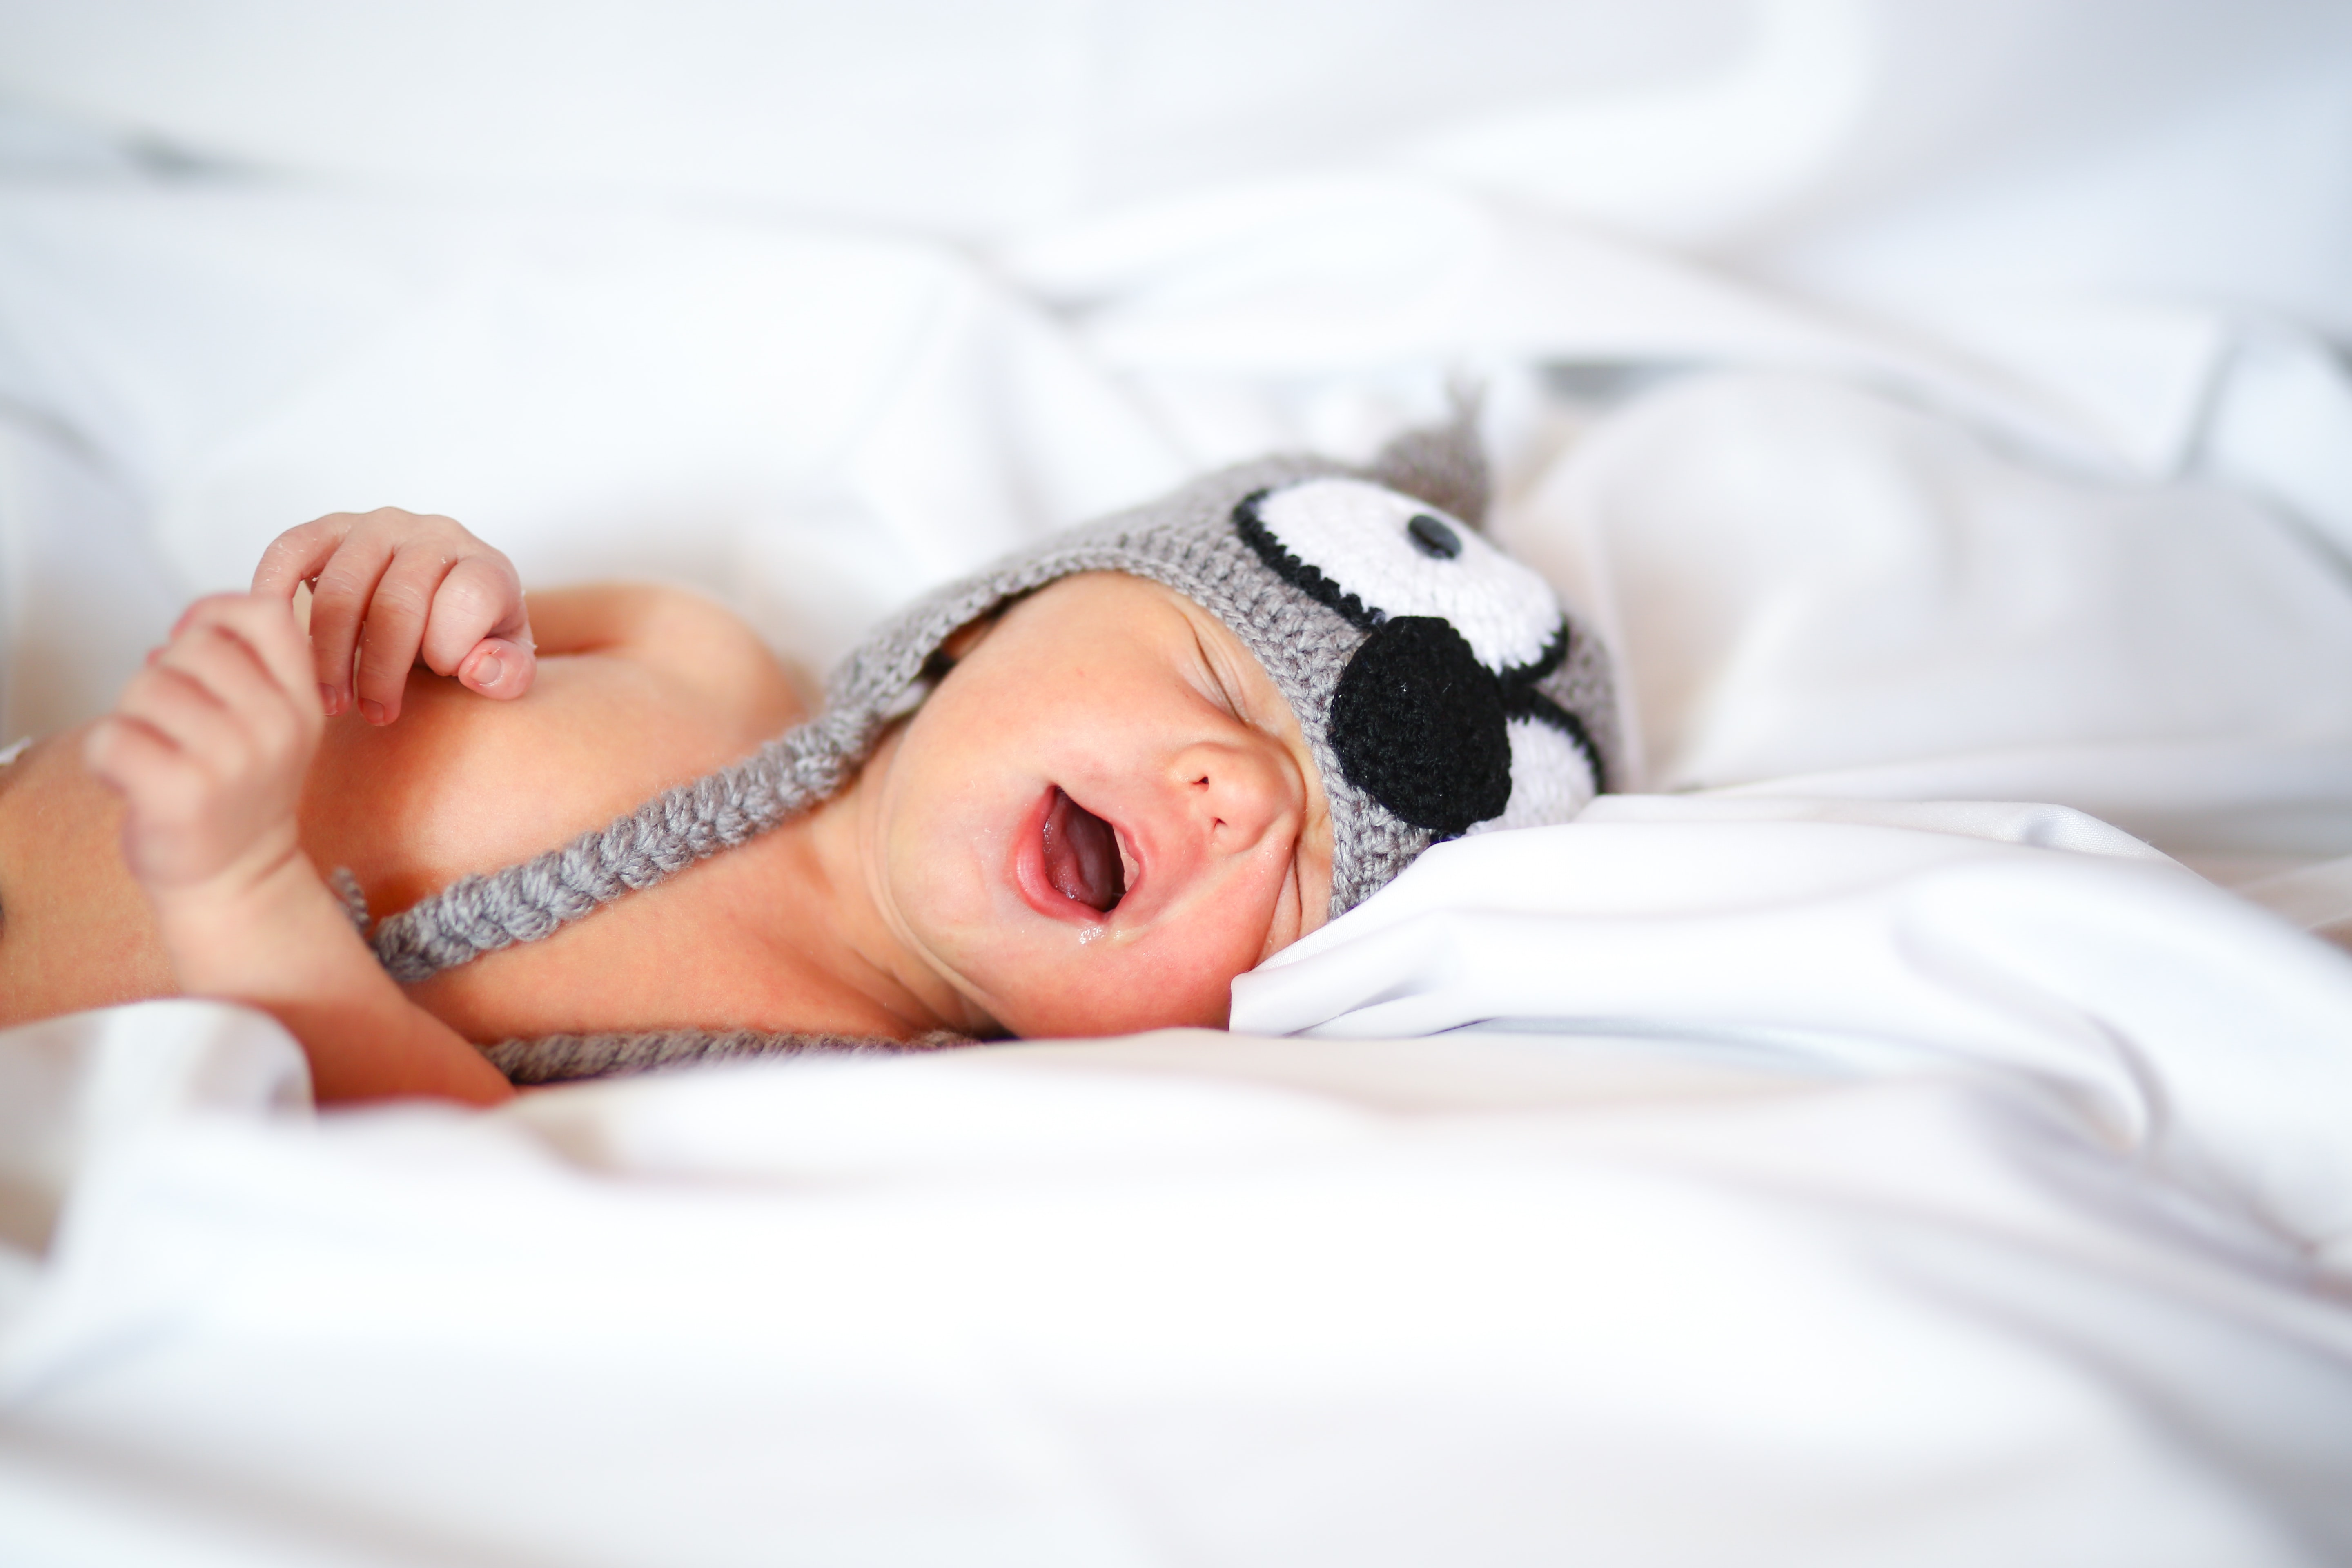 baby lying on bed with mouth open